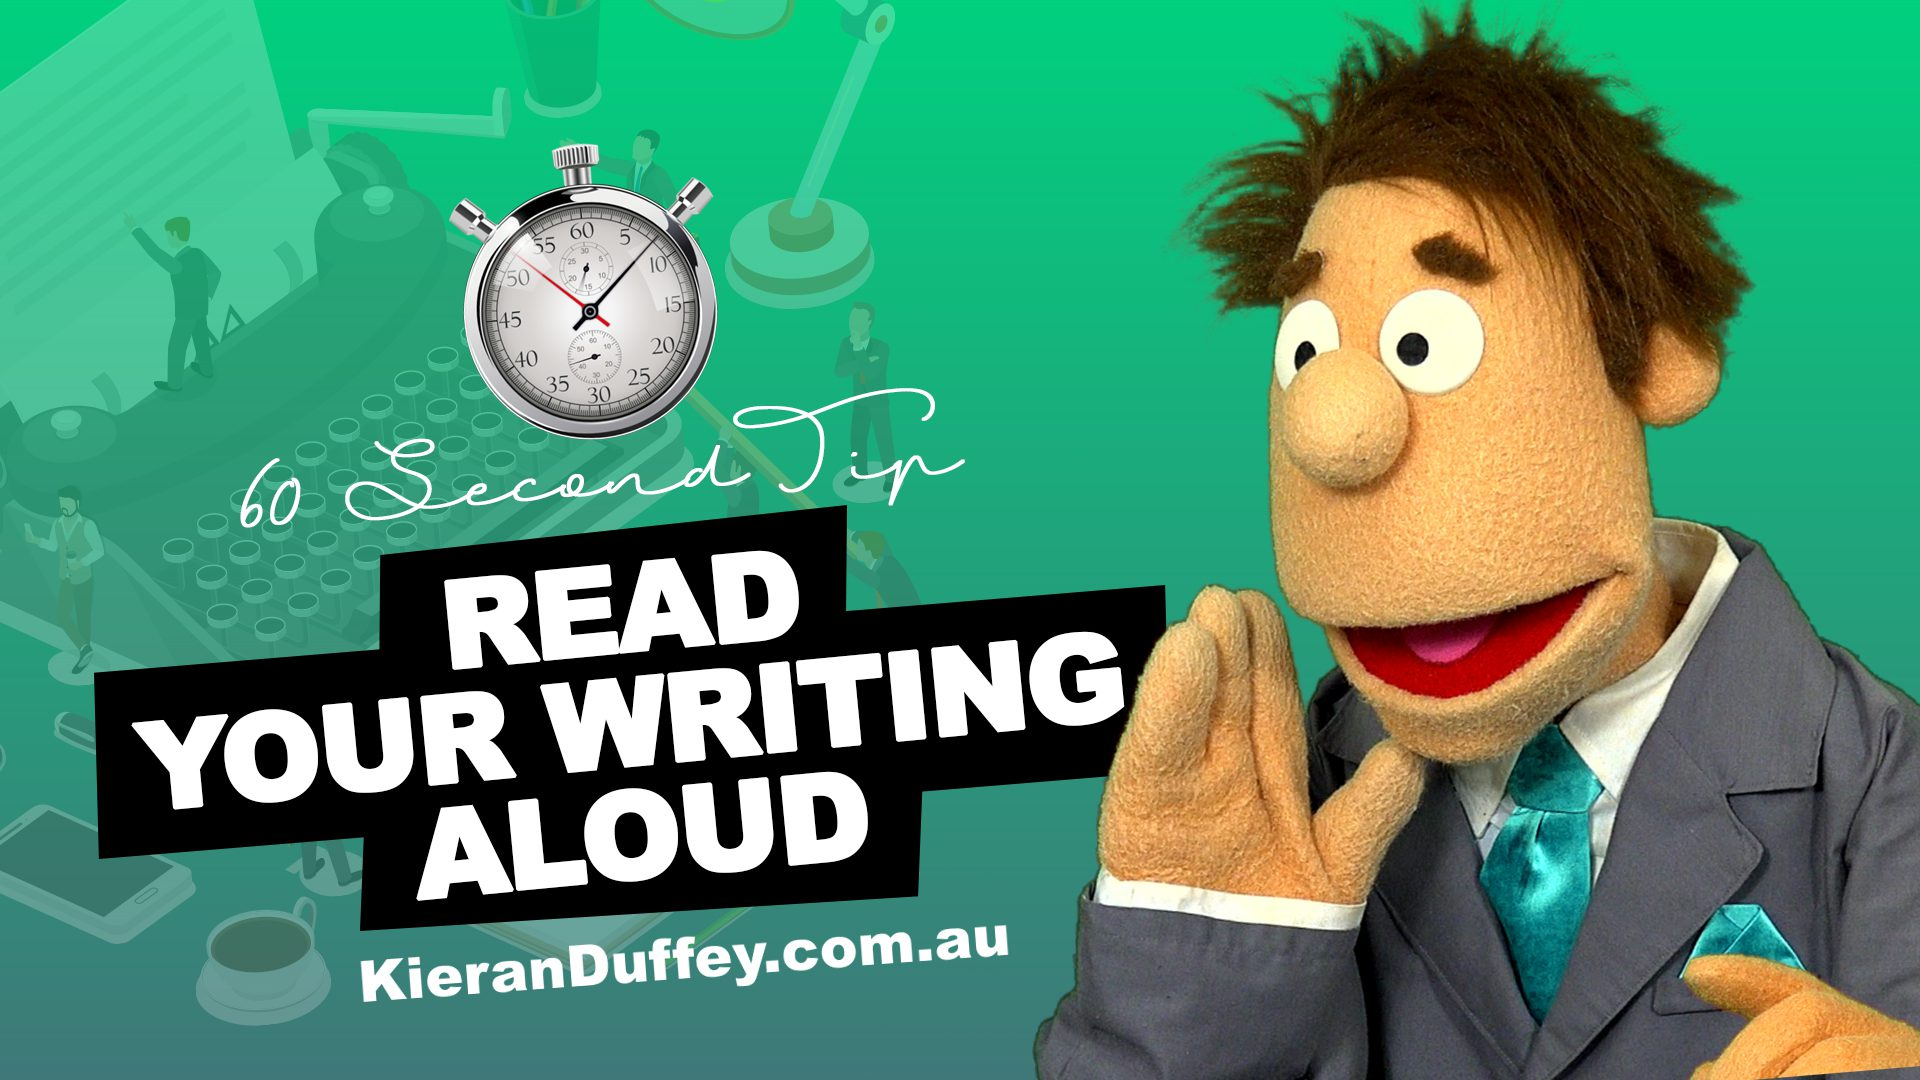 Video discussing importance of reading your writing aloud to capture errors